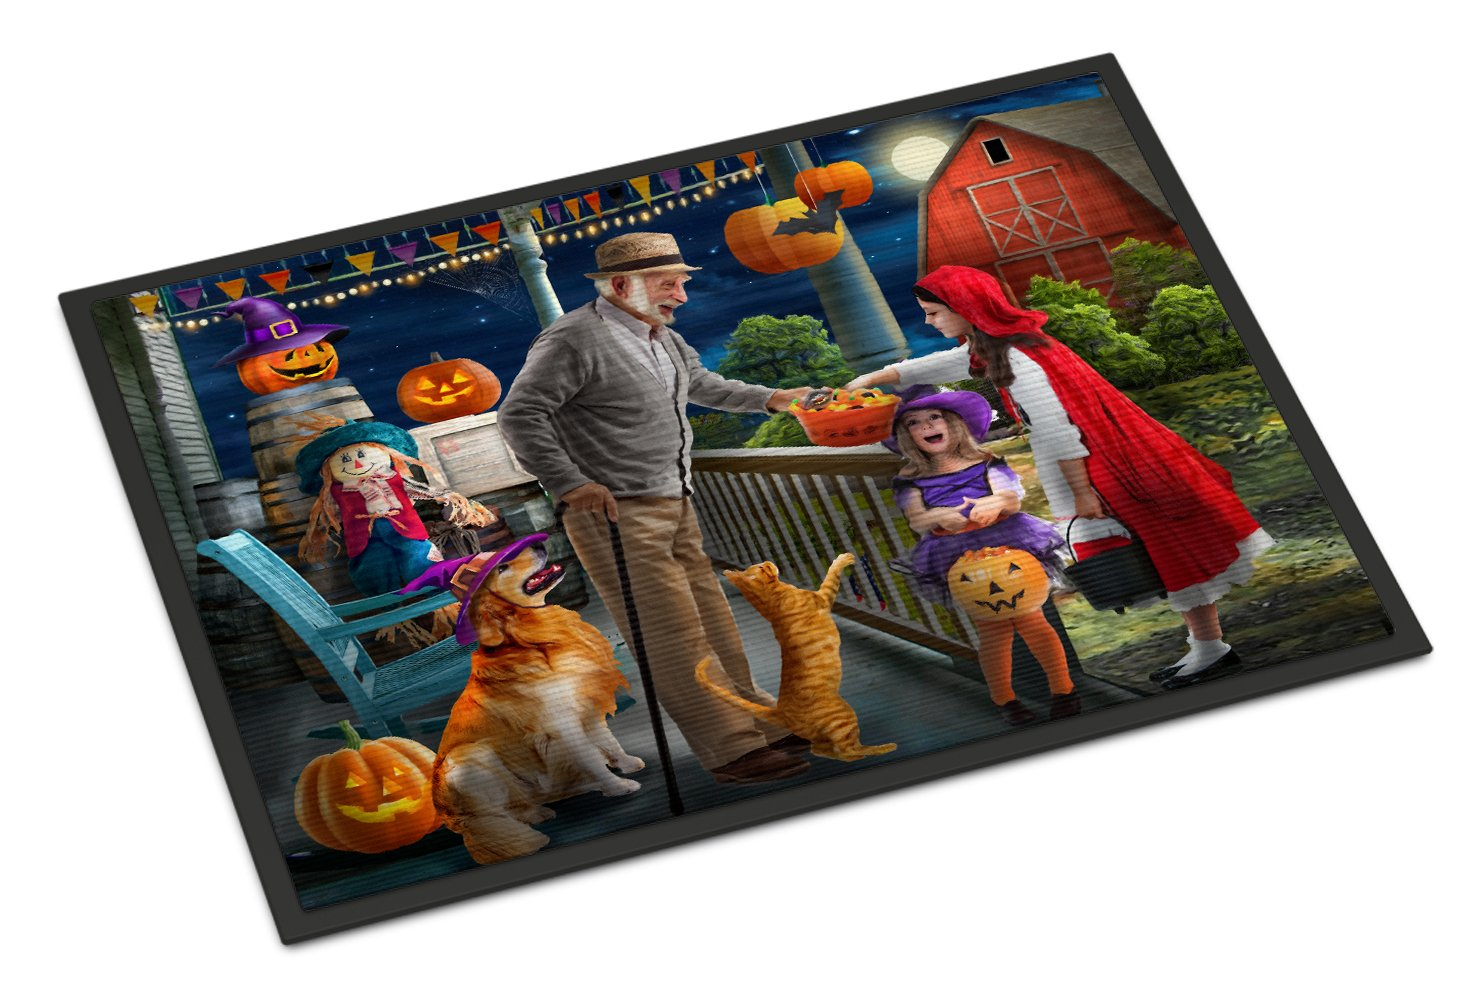 Halloween at Grandpa's Golden Retriever Indoor or Outdoor Mat 24x36 PTW2072JMAT by Caroline's Treasures